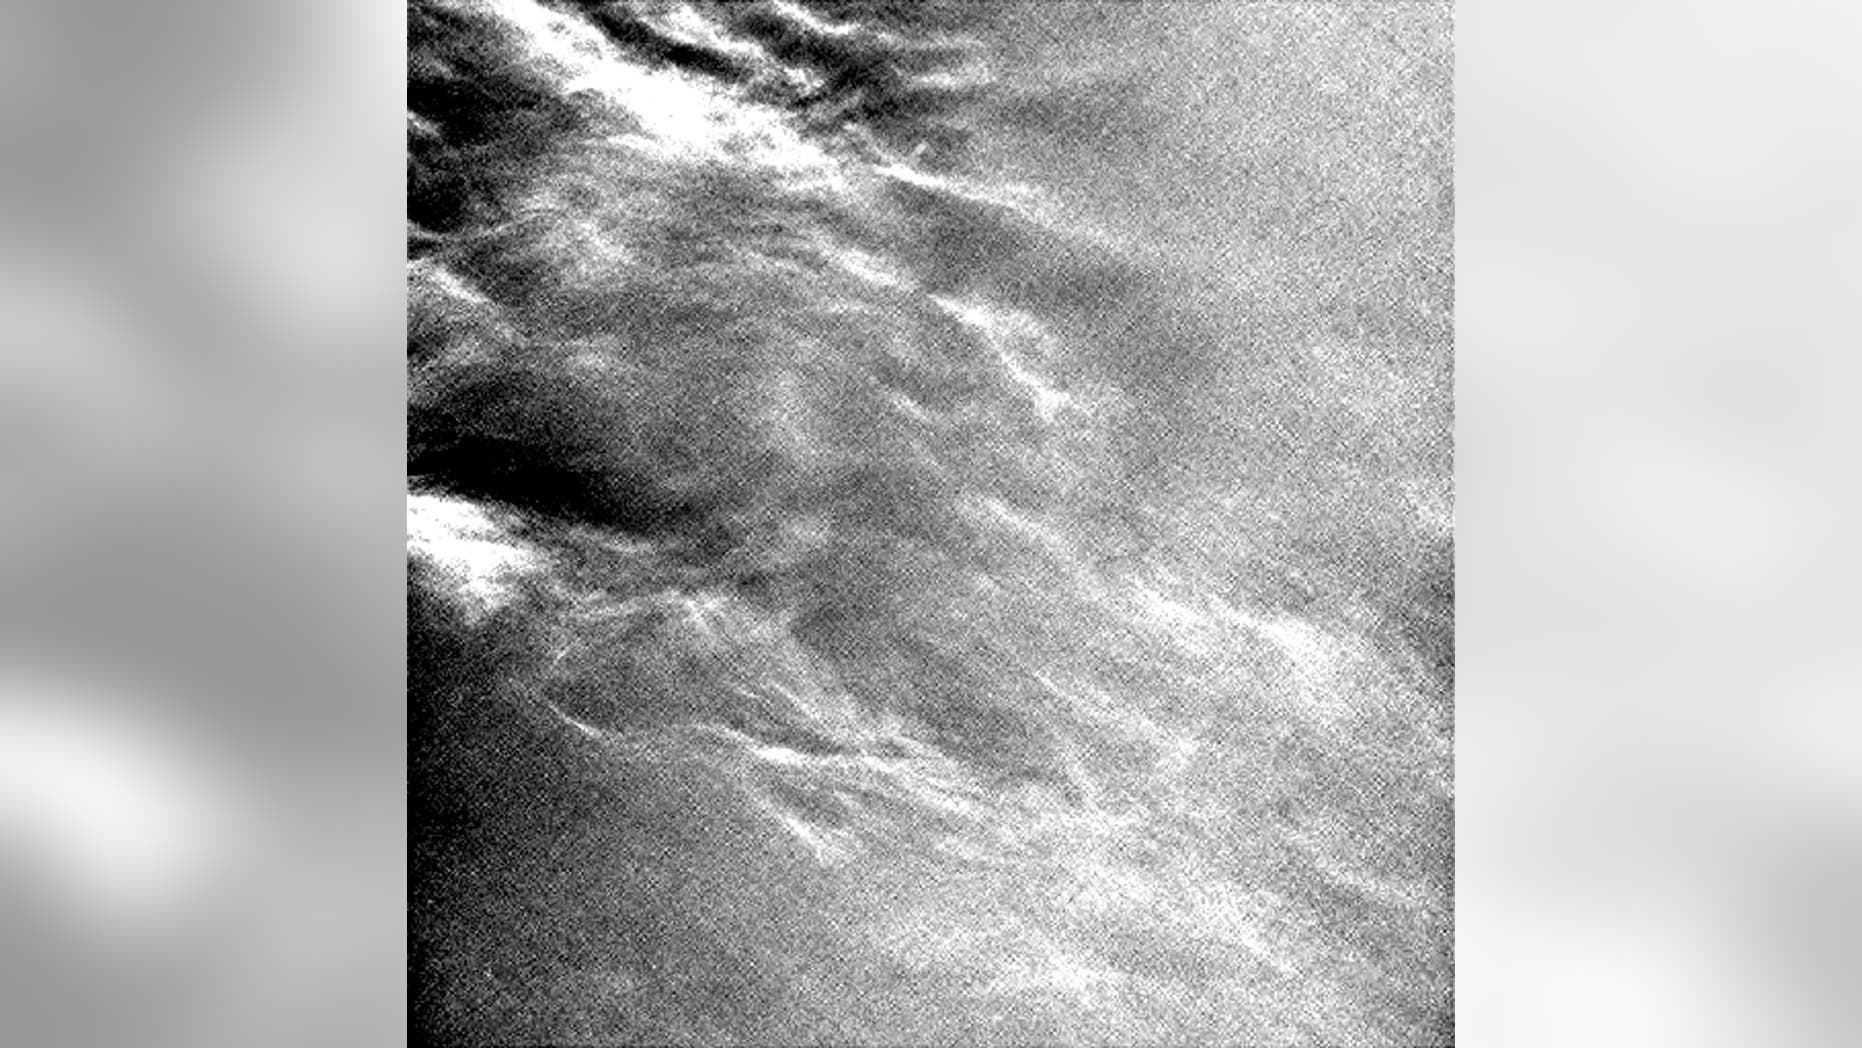 Wispy clouds streaking across Mars' sky, as imaged by the Curiosity rover.